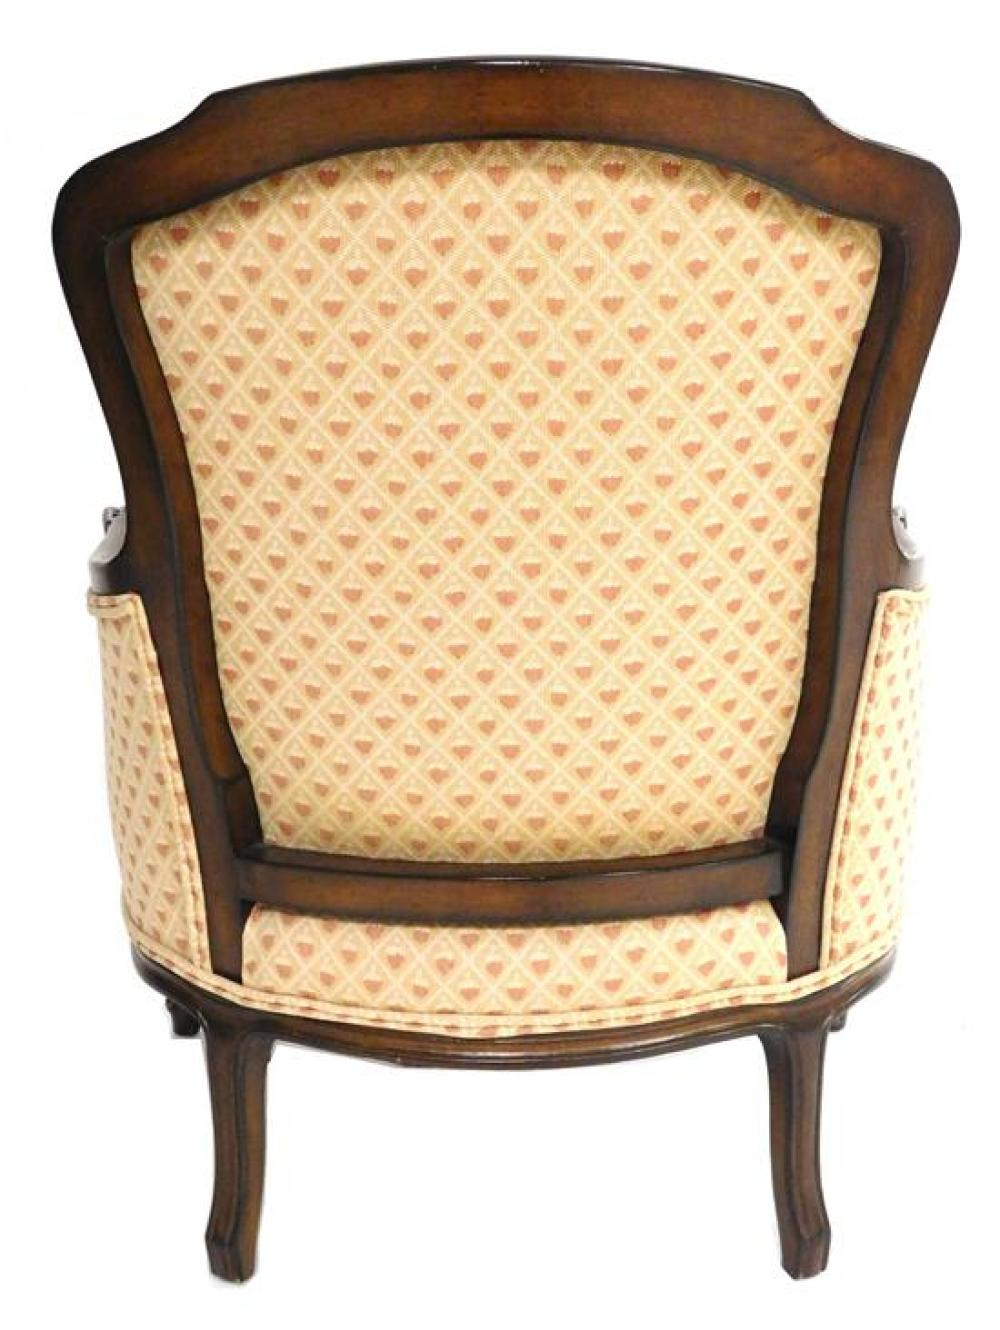 "French style armchair, ""Meyer Gunther Martini"" NY label, upholstry features coral, tan and cream acorn-like design, 34"" h., wear con..."